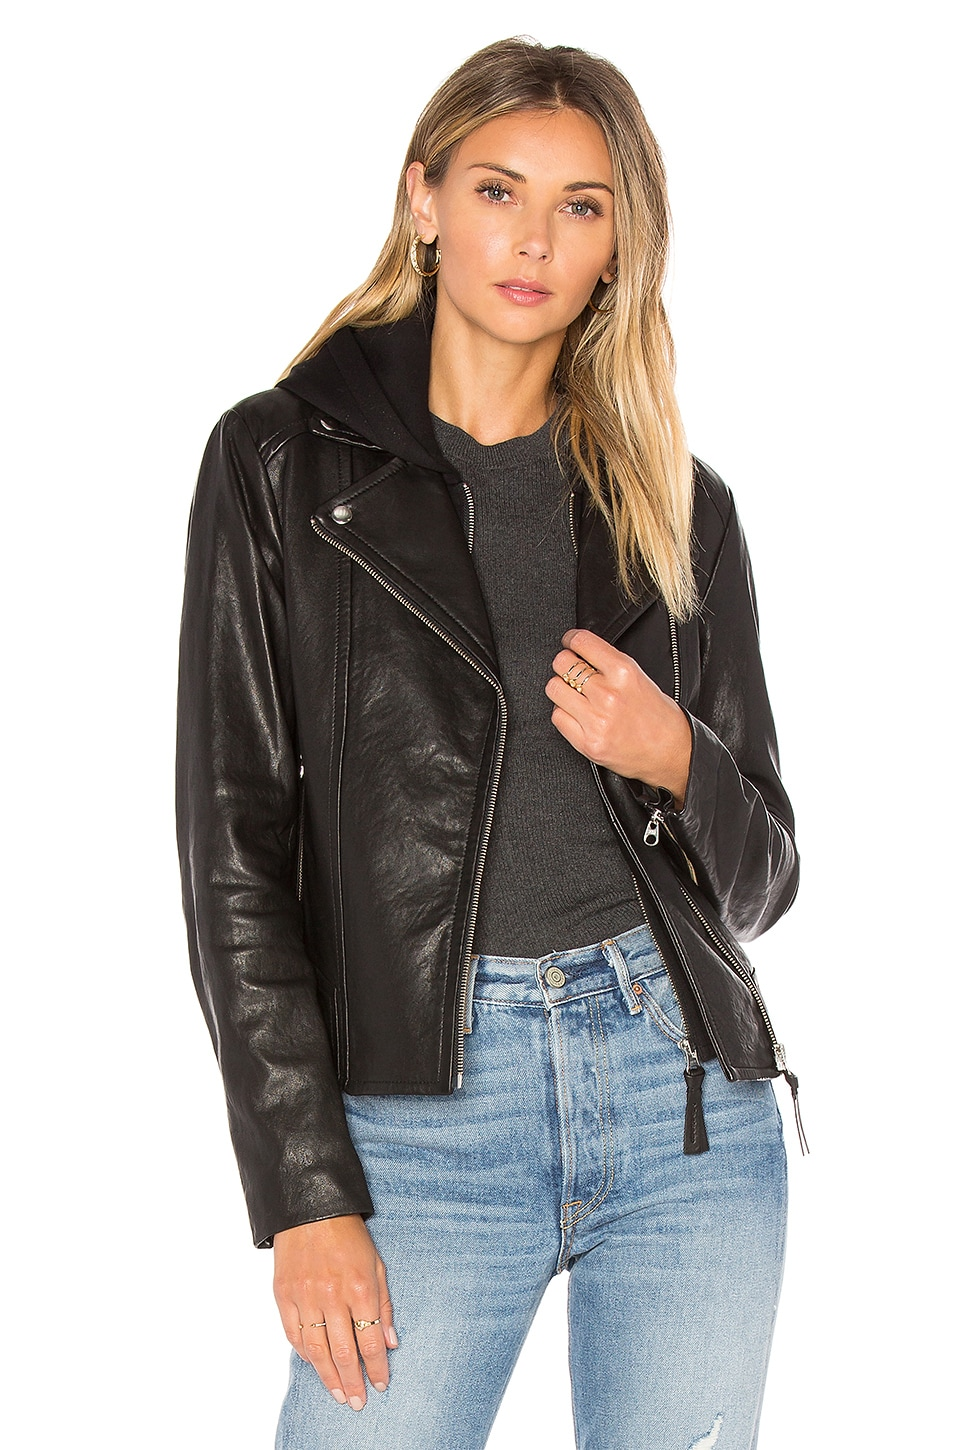 Mackage Yoana Jacket in Black